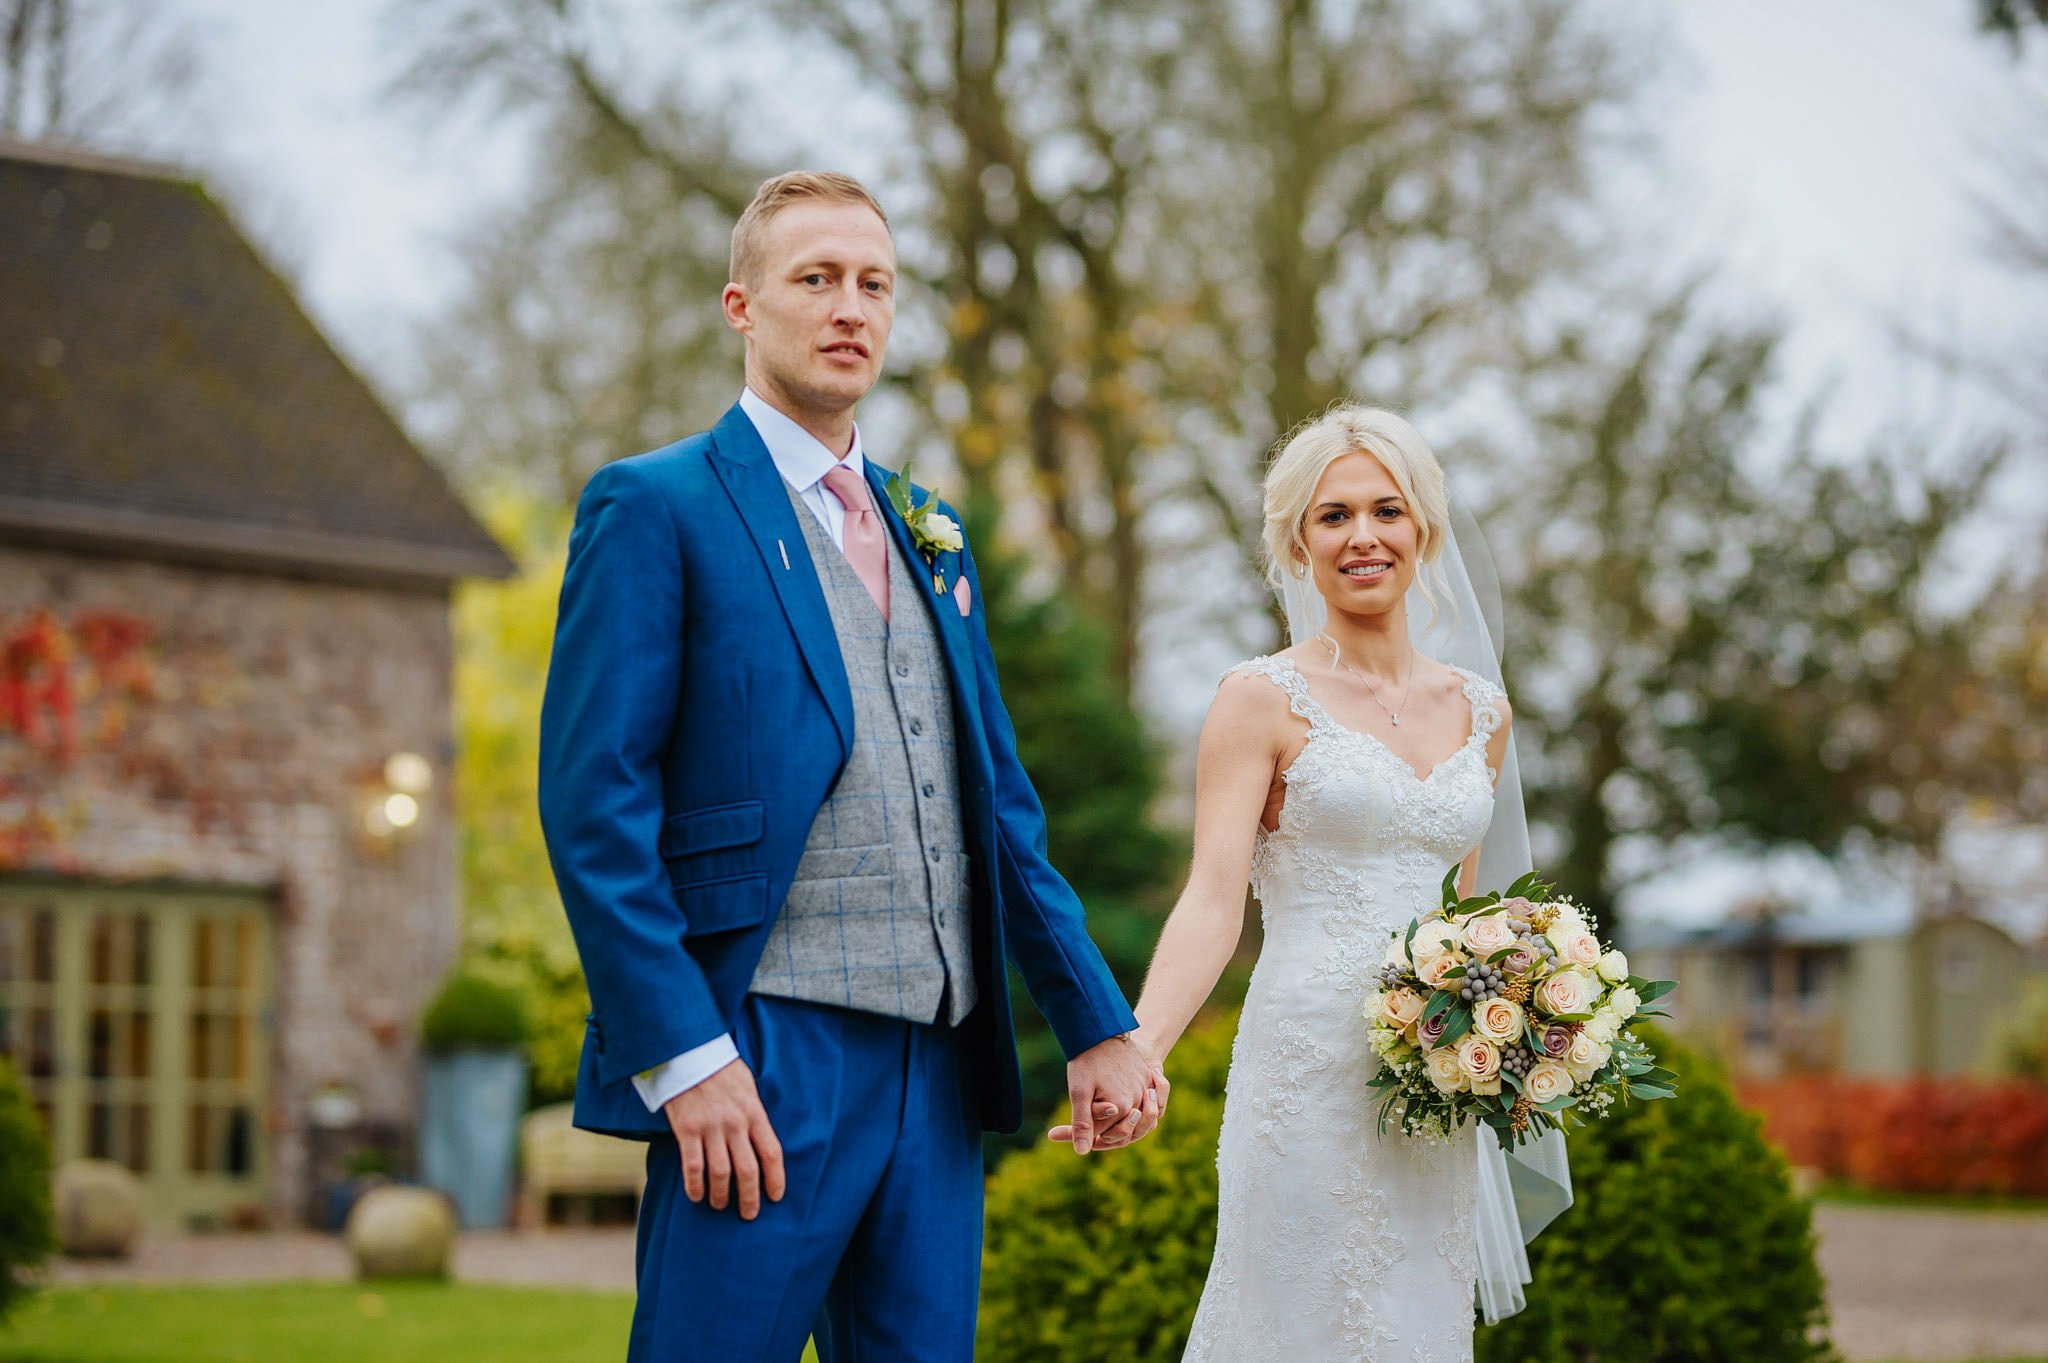 sigma 85mm art review wedding photography 122 - Sigma 85mm F1.4 ART review vs Wedding Photography